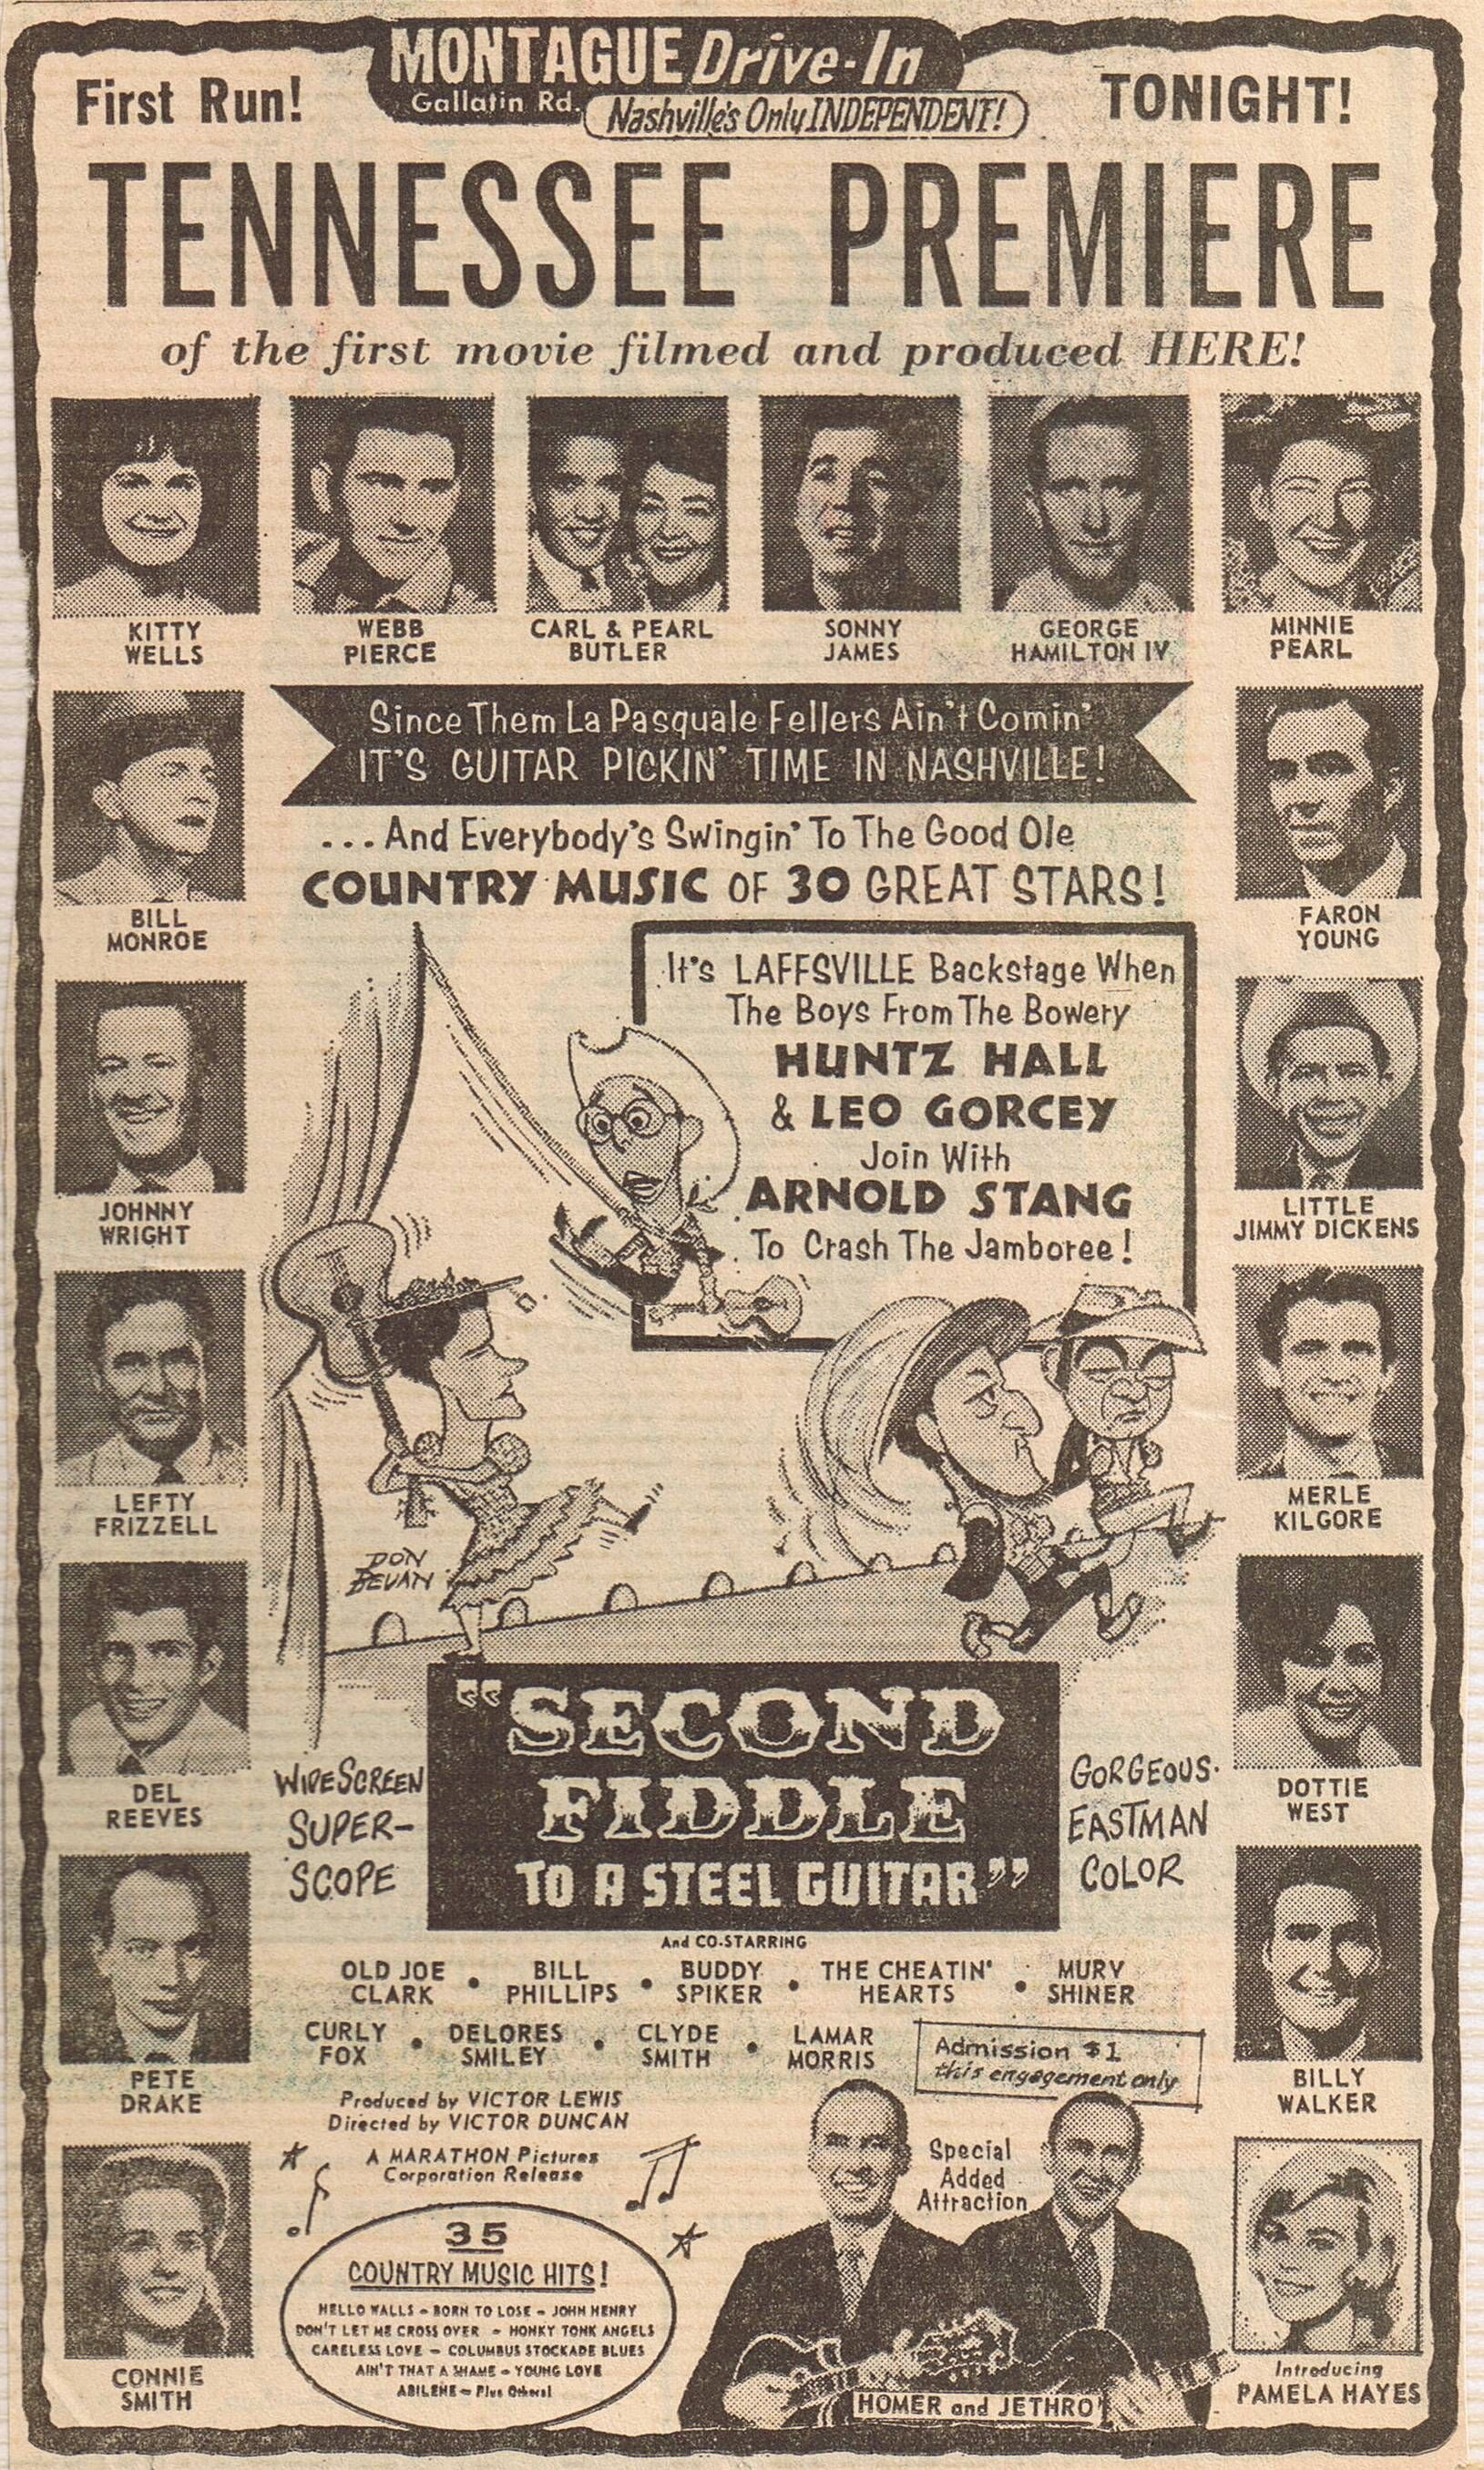 Advertisement For TENNESSEE PREMIERE Of Second Fiddle To A Steel Guitar Country Music Movie